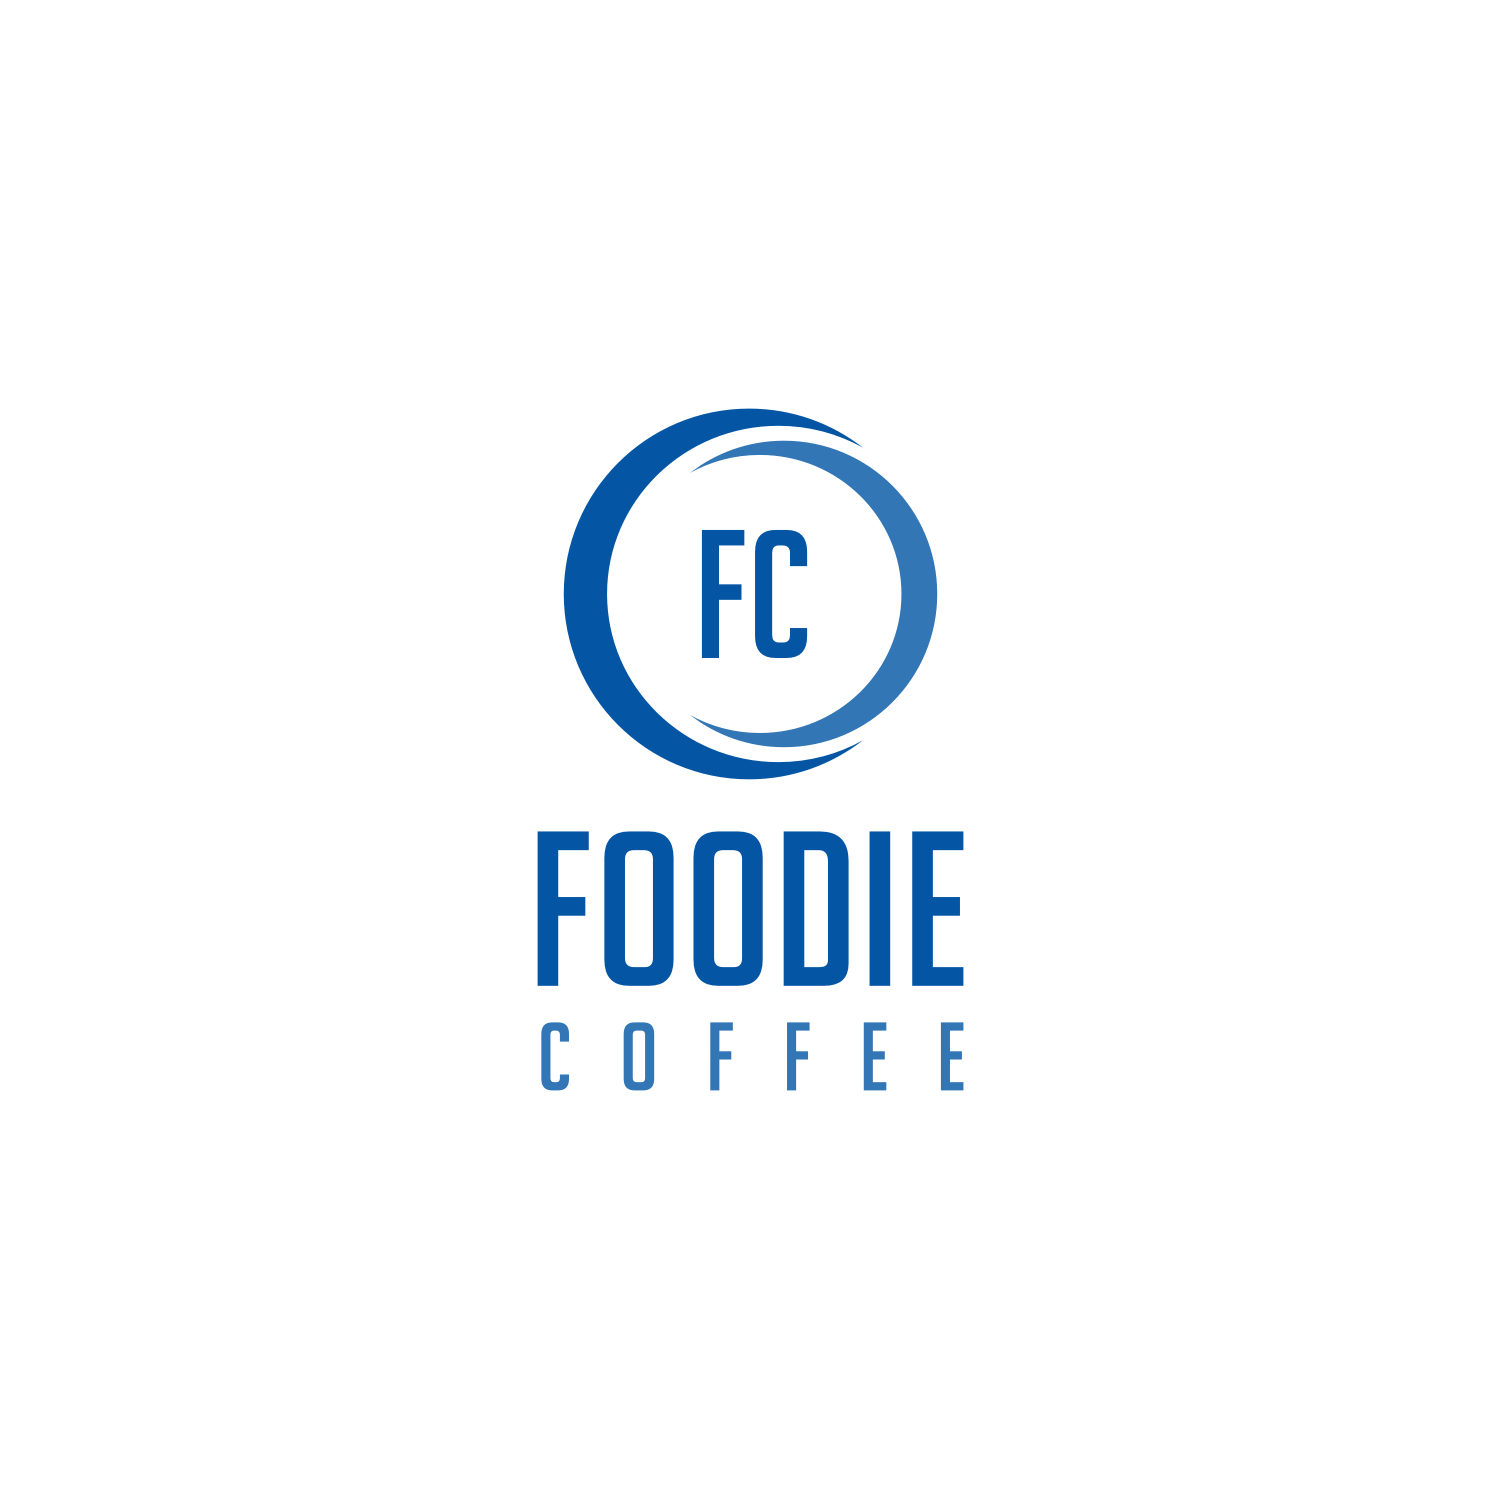 Personable, Colorful, Online Shopping Logo Design for Foodie.